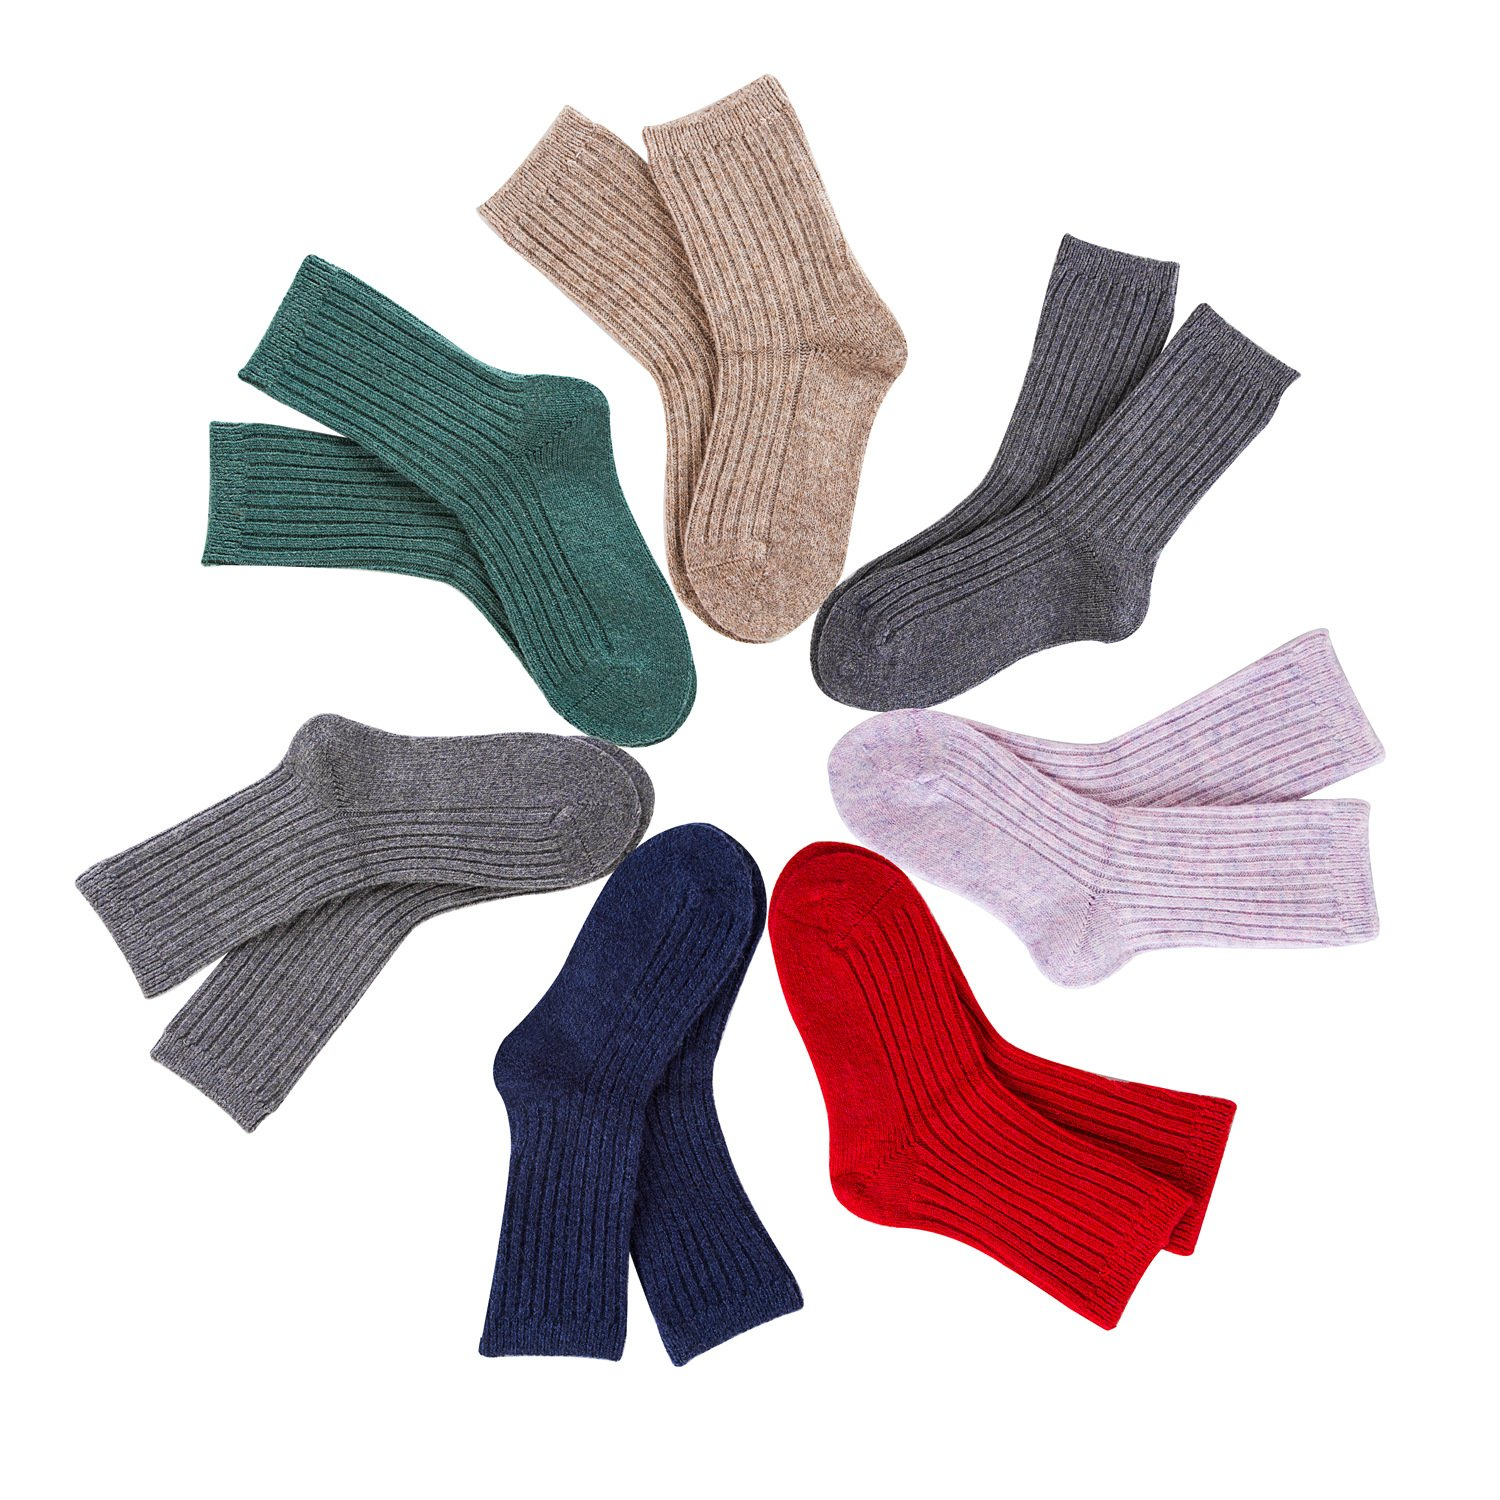 Lovely Annie 8 Pairs Children Wool Blend Crew Socks Size 5Y-8Y Girl Random Color by Lovely Annie